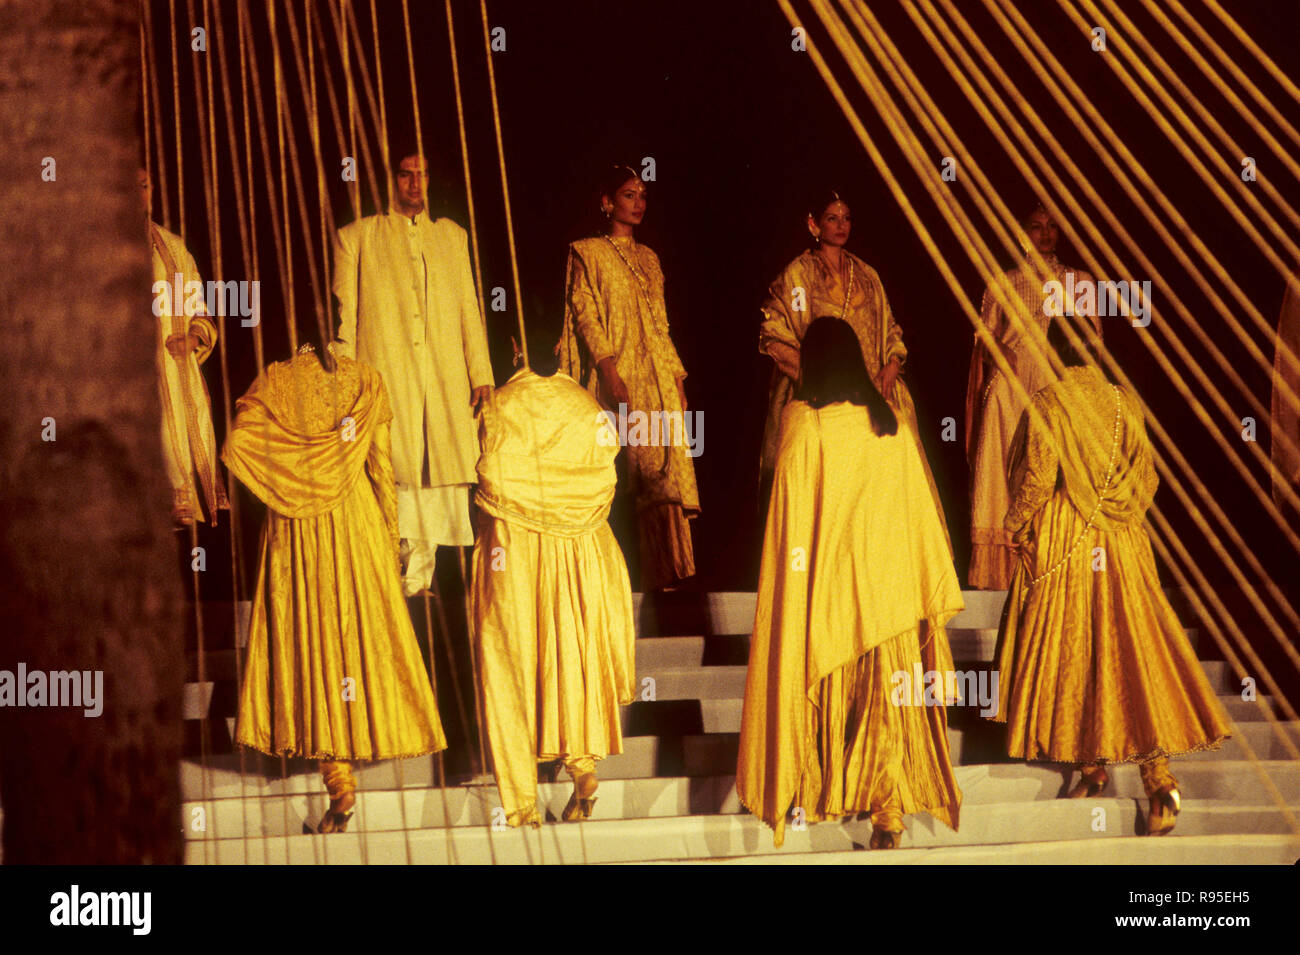 Fashion Show in India - Stock Image